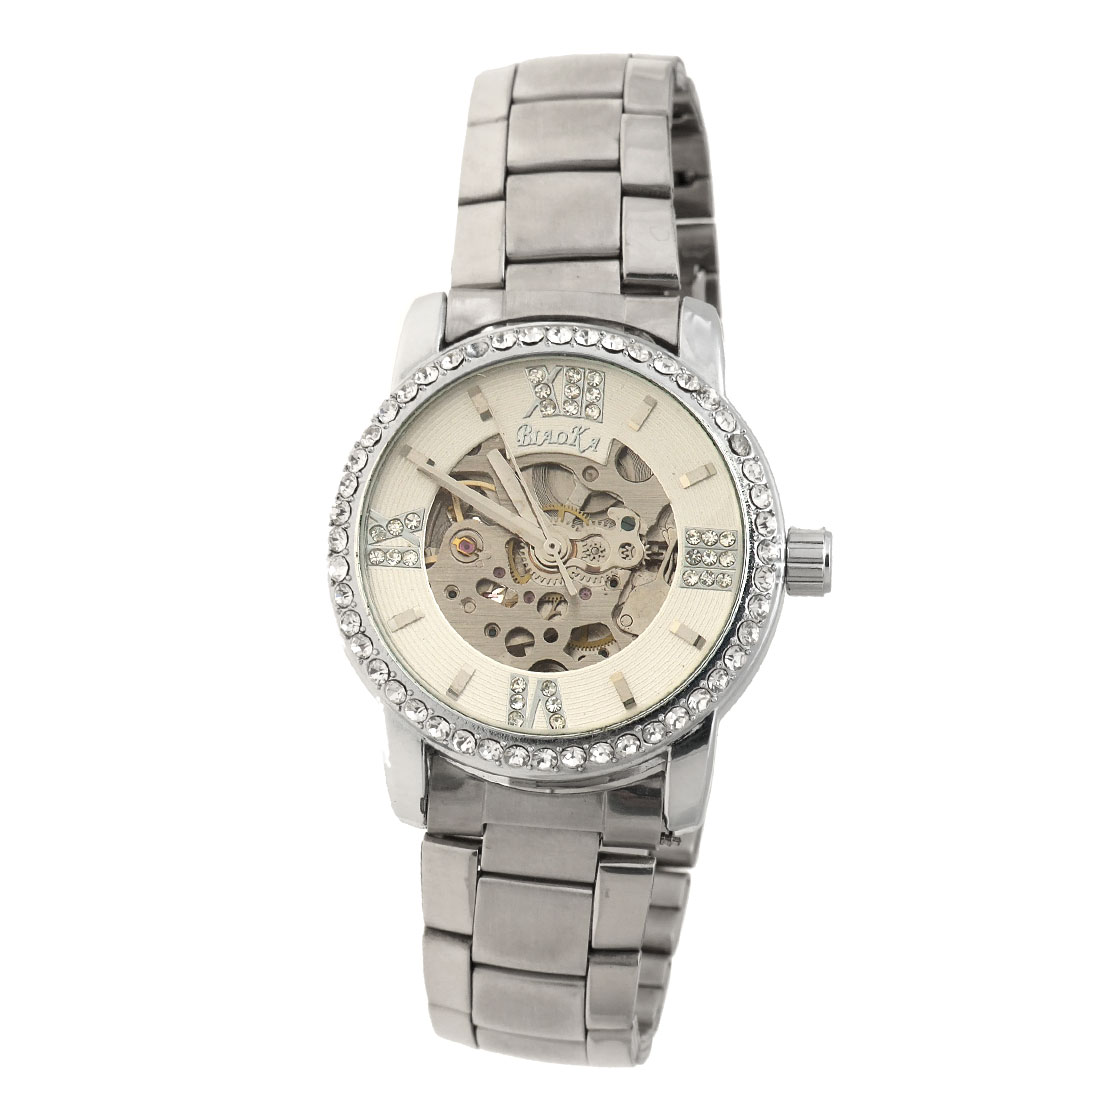 Fashion Jewelry Stainless Steel Mechanical Wrist Watch